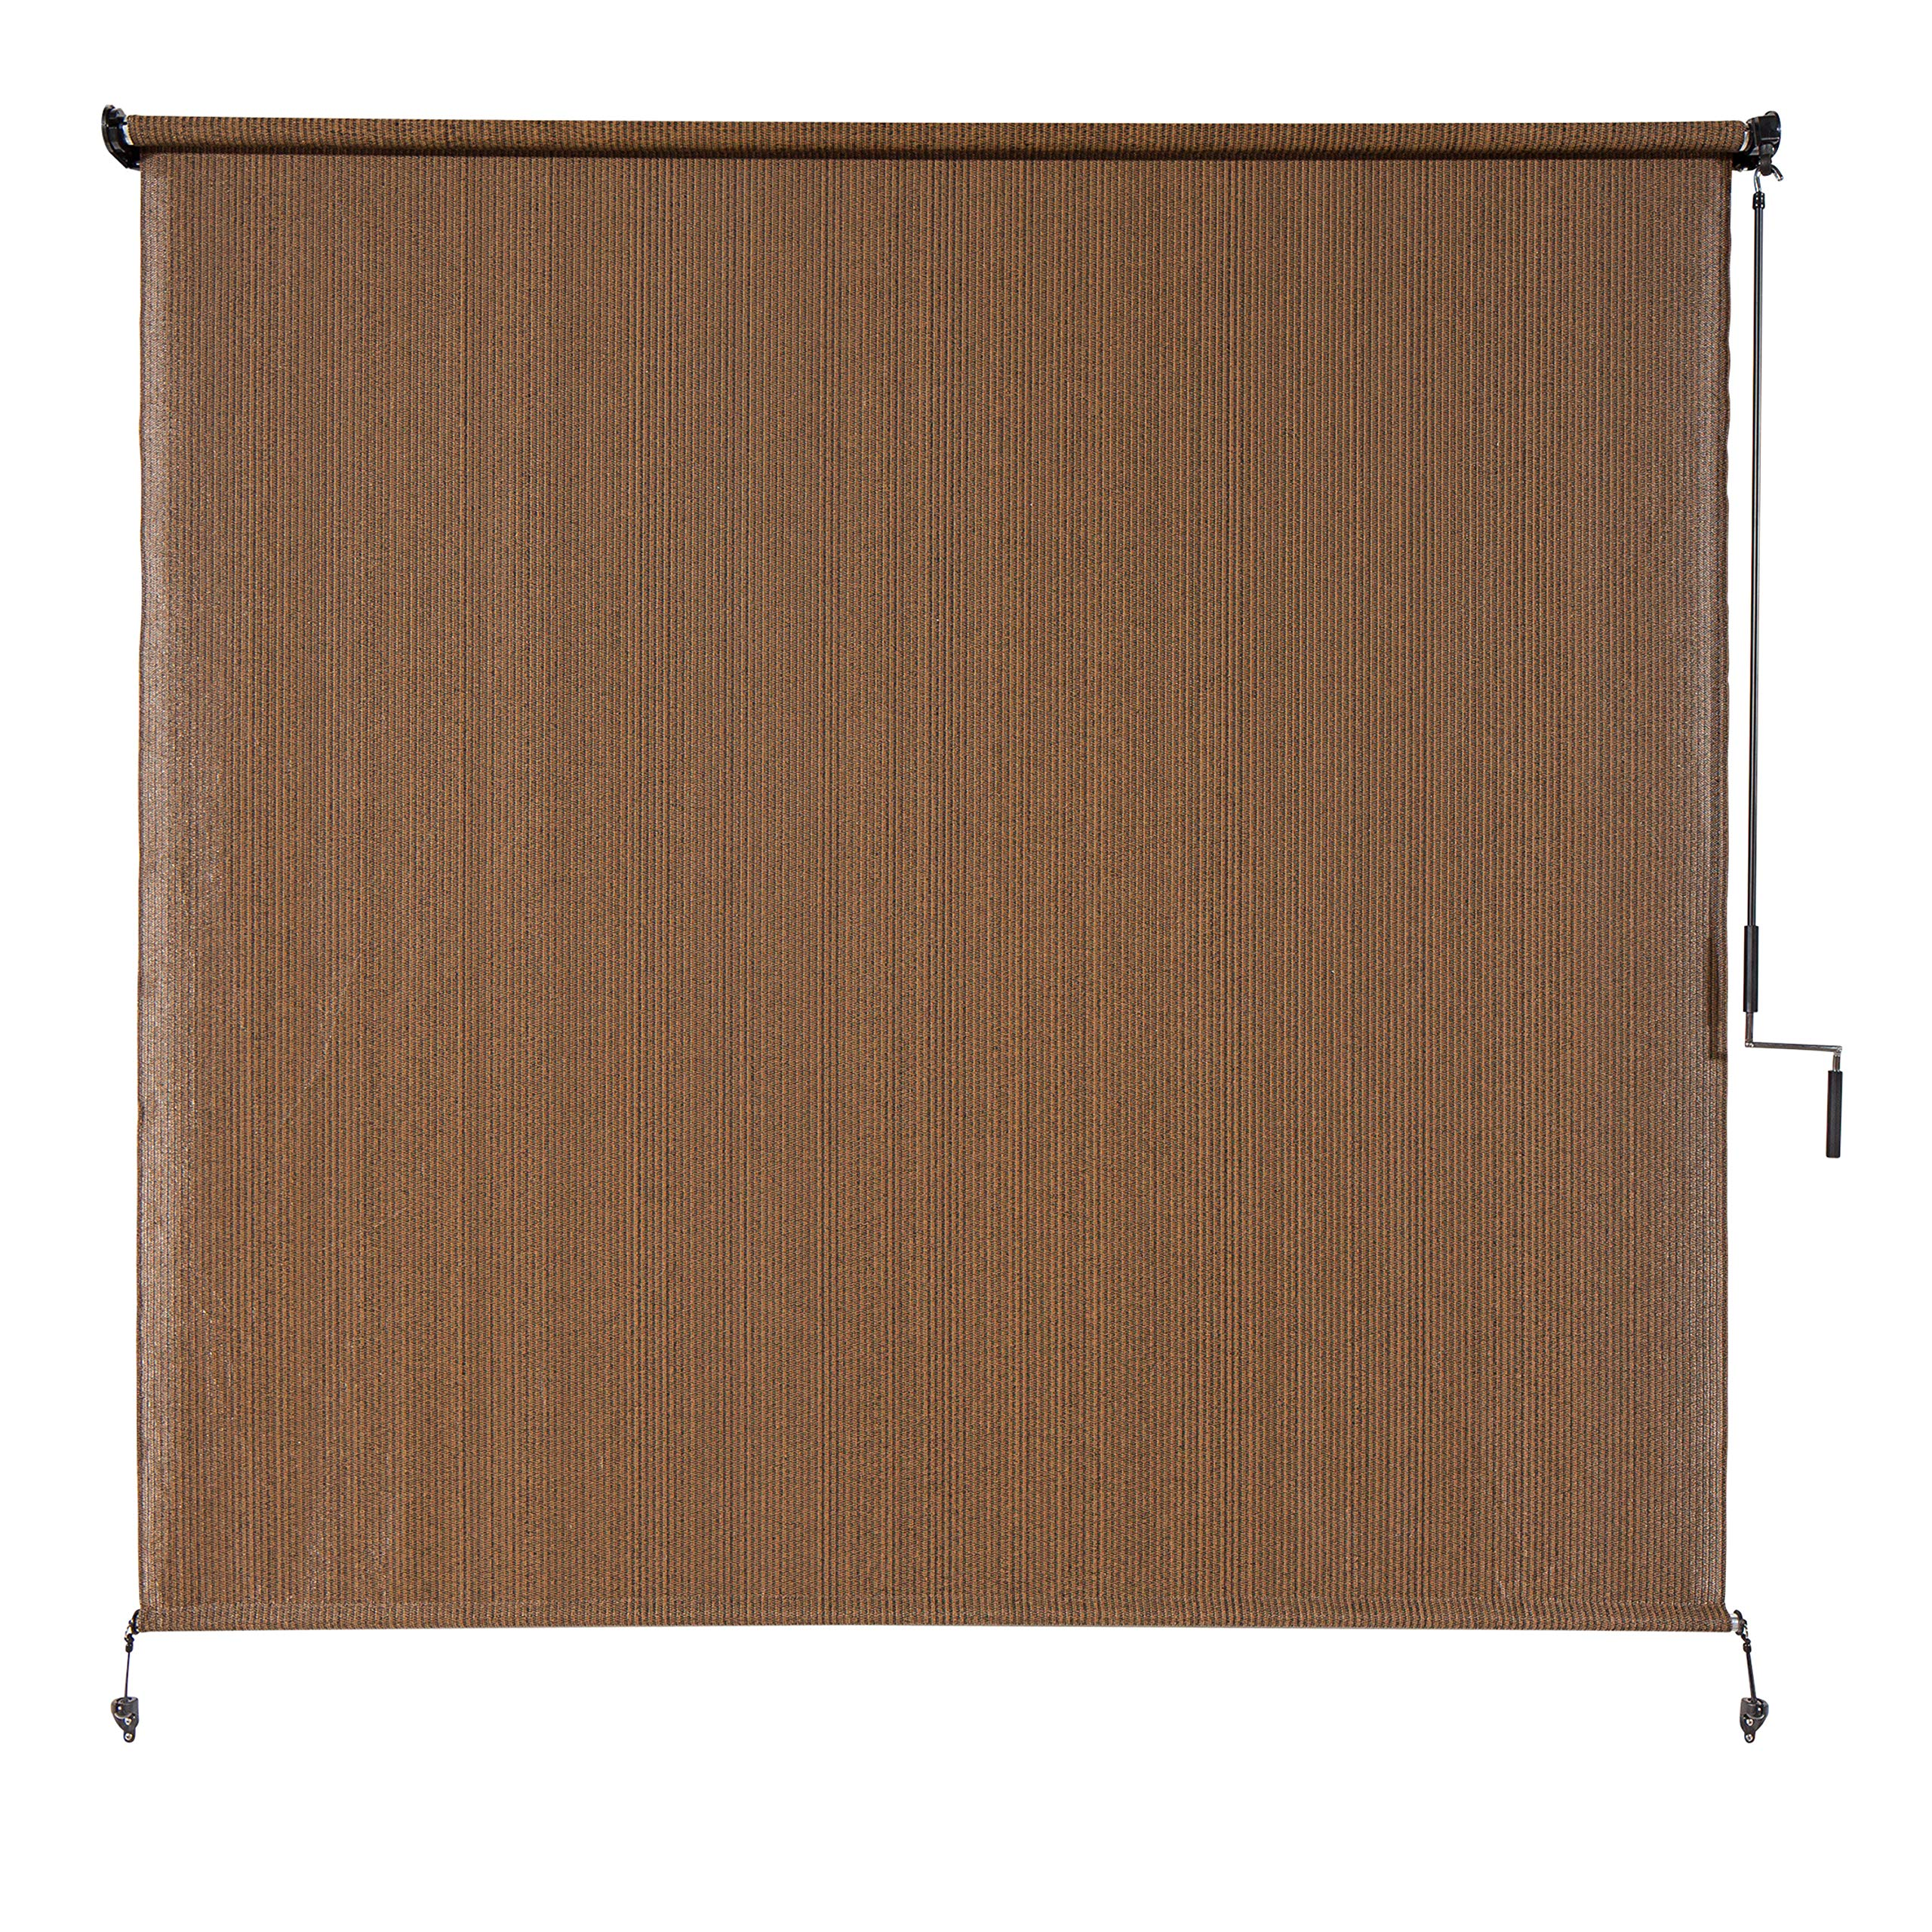 Coolaroo Exterior Roller Shade, Cordless Roller Shade with 90% UV Protection, No Valance, (4' W X 6' L), Mocha by Coolaroo